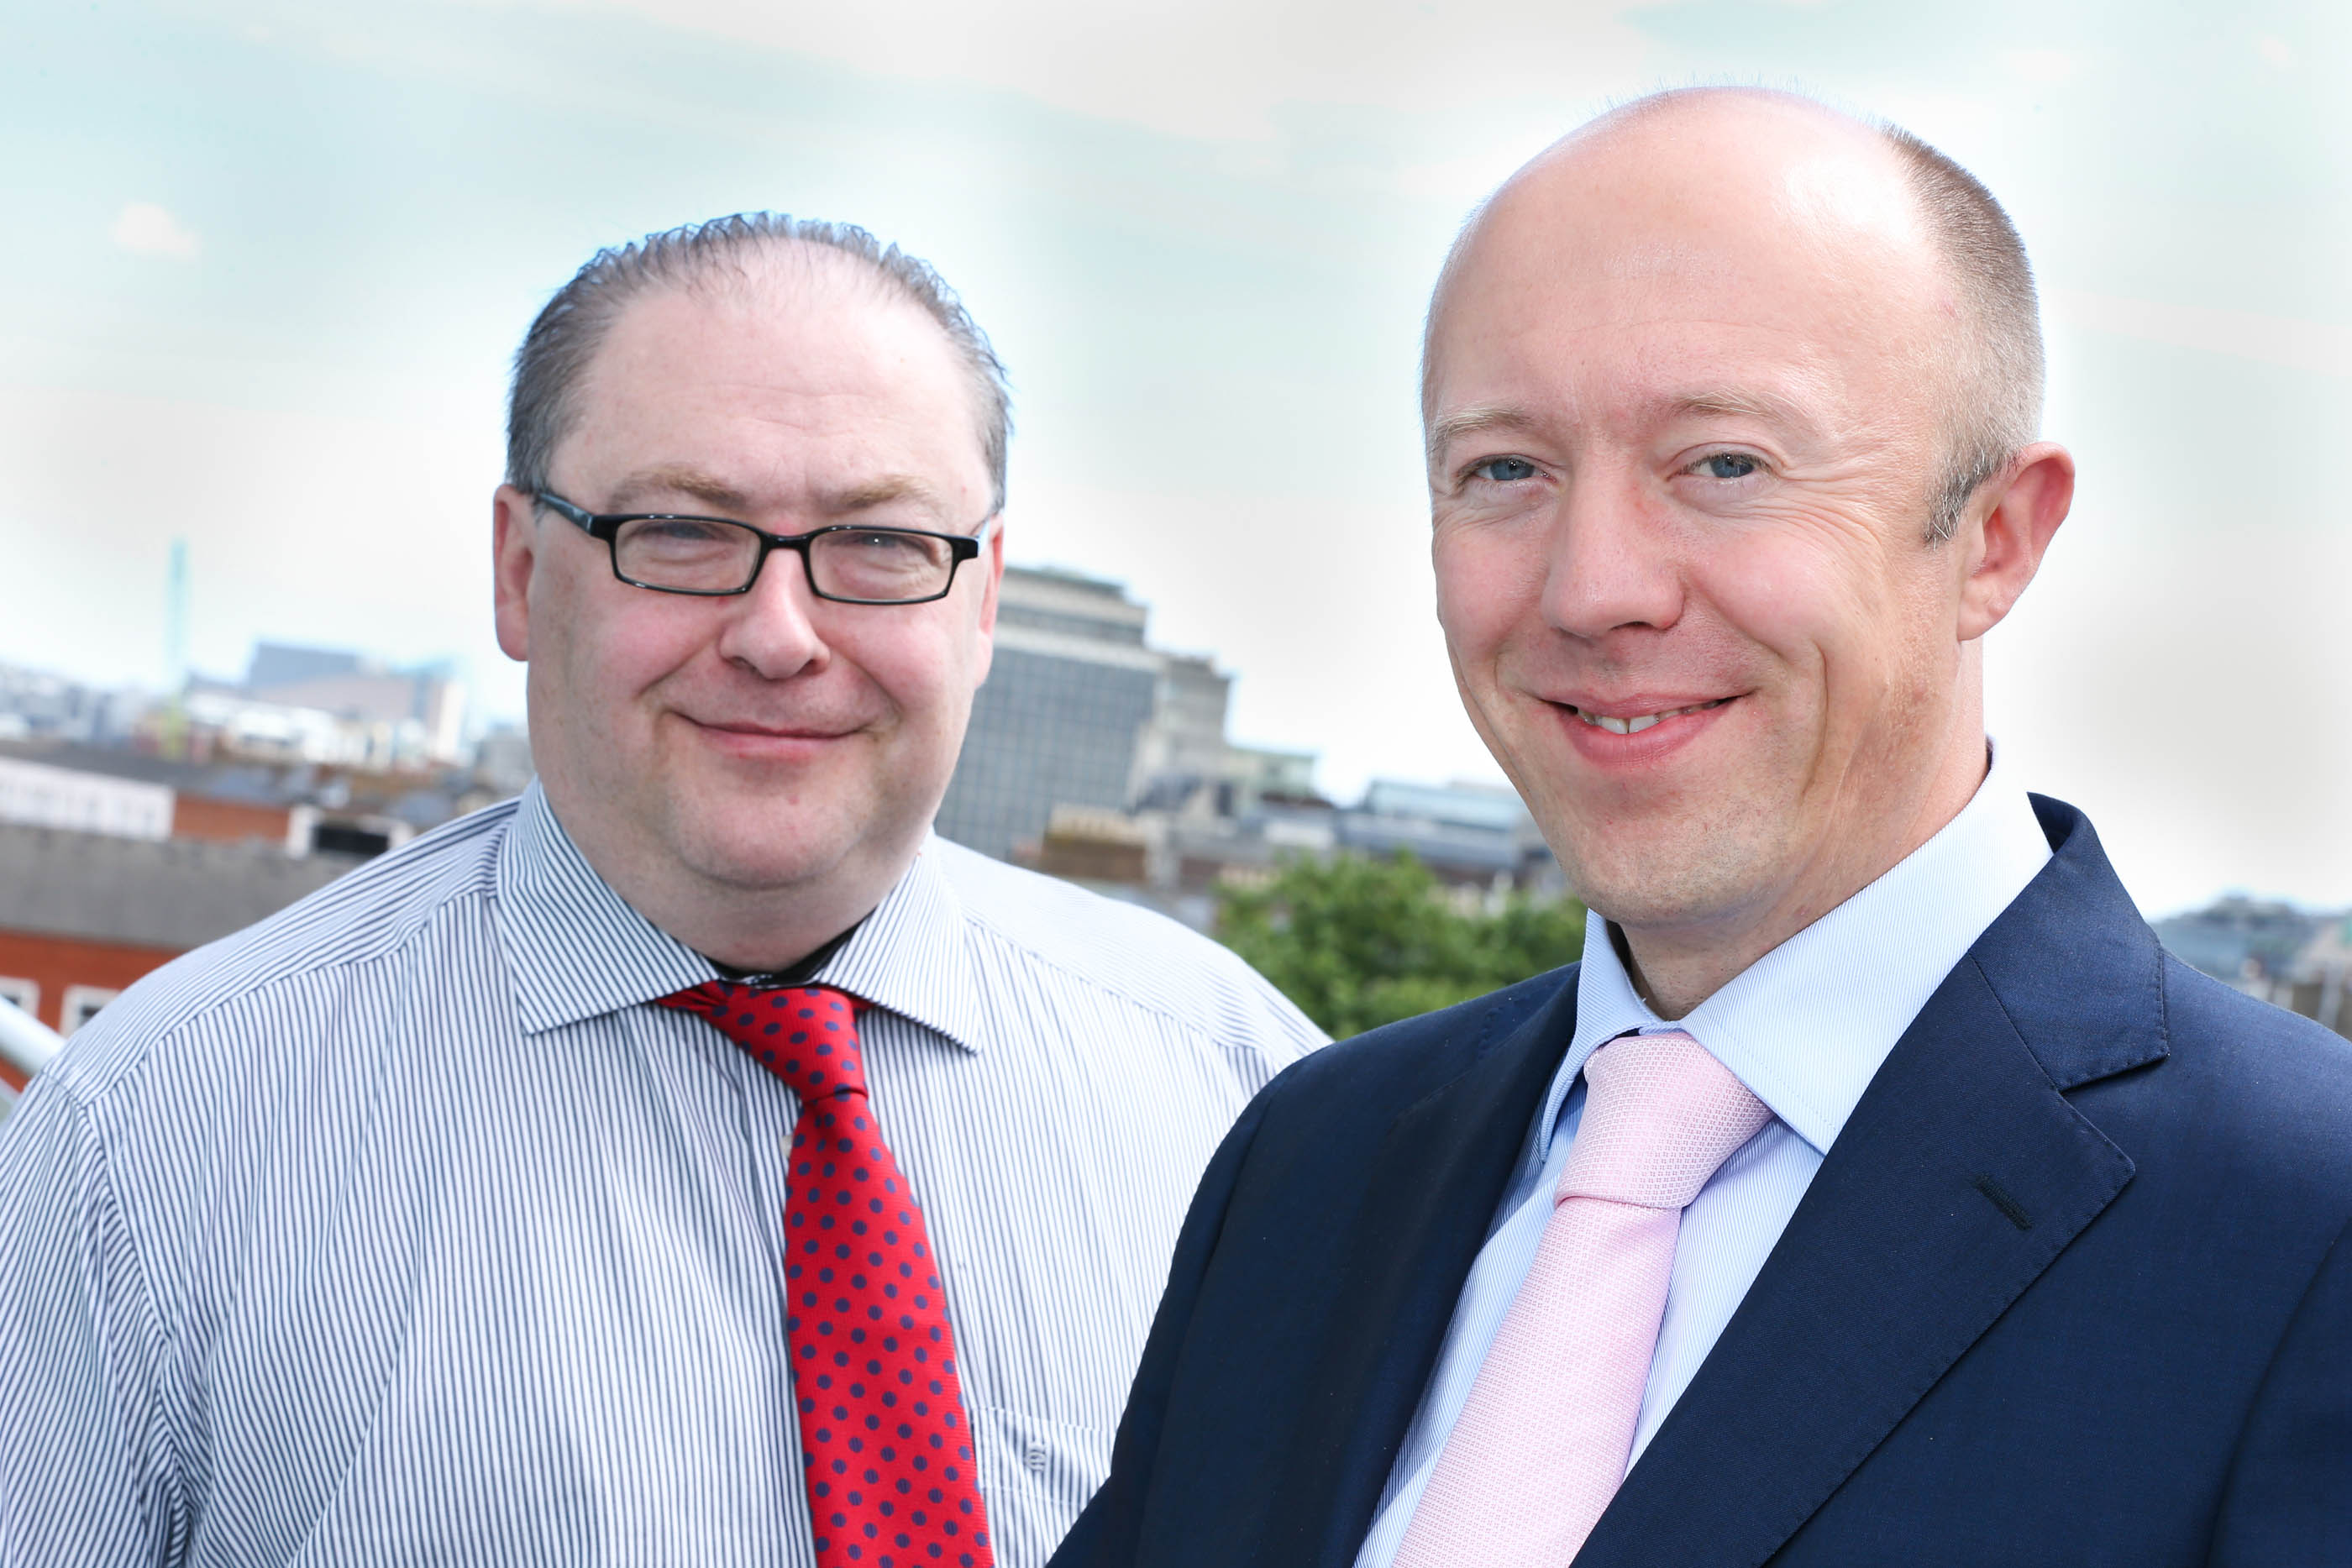 Pictured announcing the deal: Andrew Hillis, Group Head of Information Services, at Almac Group (Left) and Tom O'Connor, Director, Version 1 (Right).